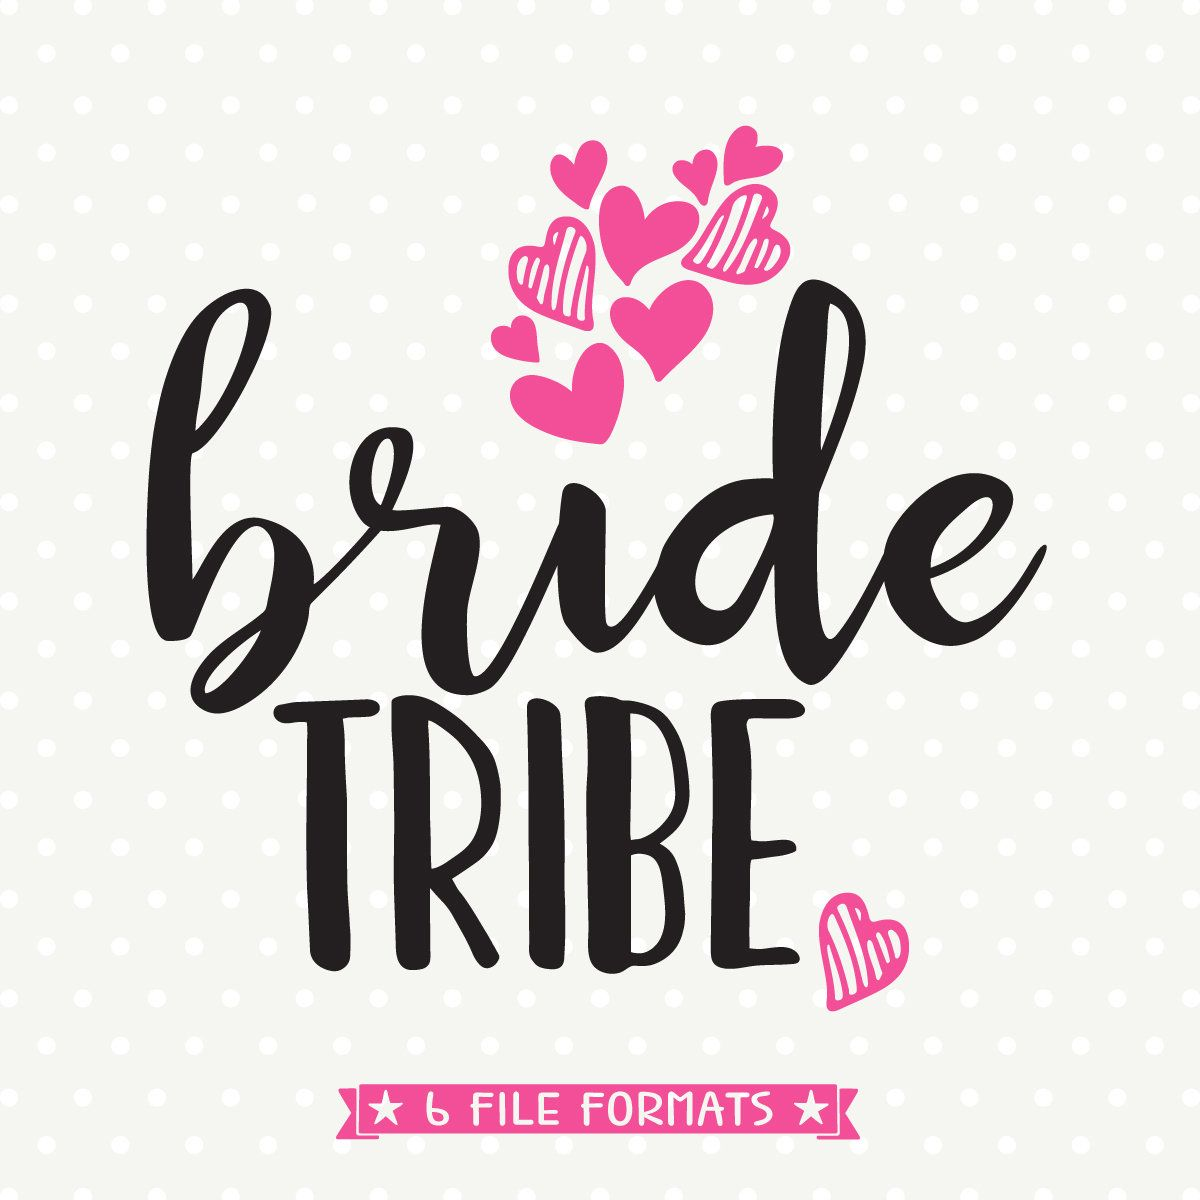 Pin On Wedding And Bridal Party Svg Files For Cricut And